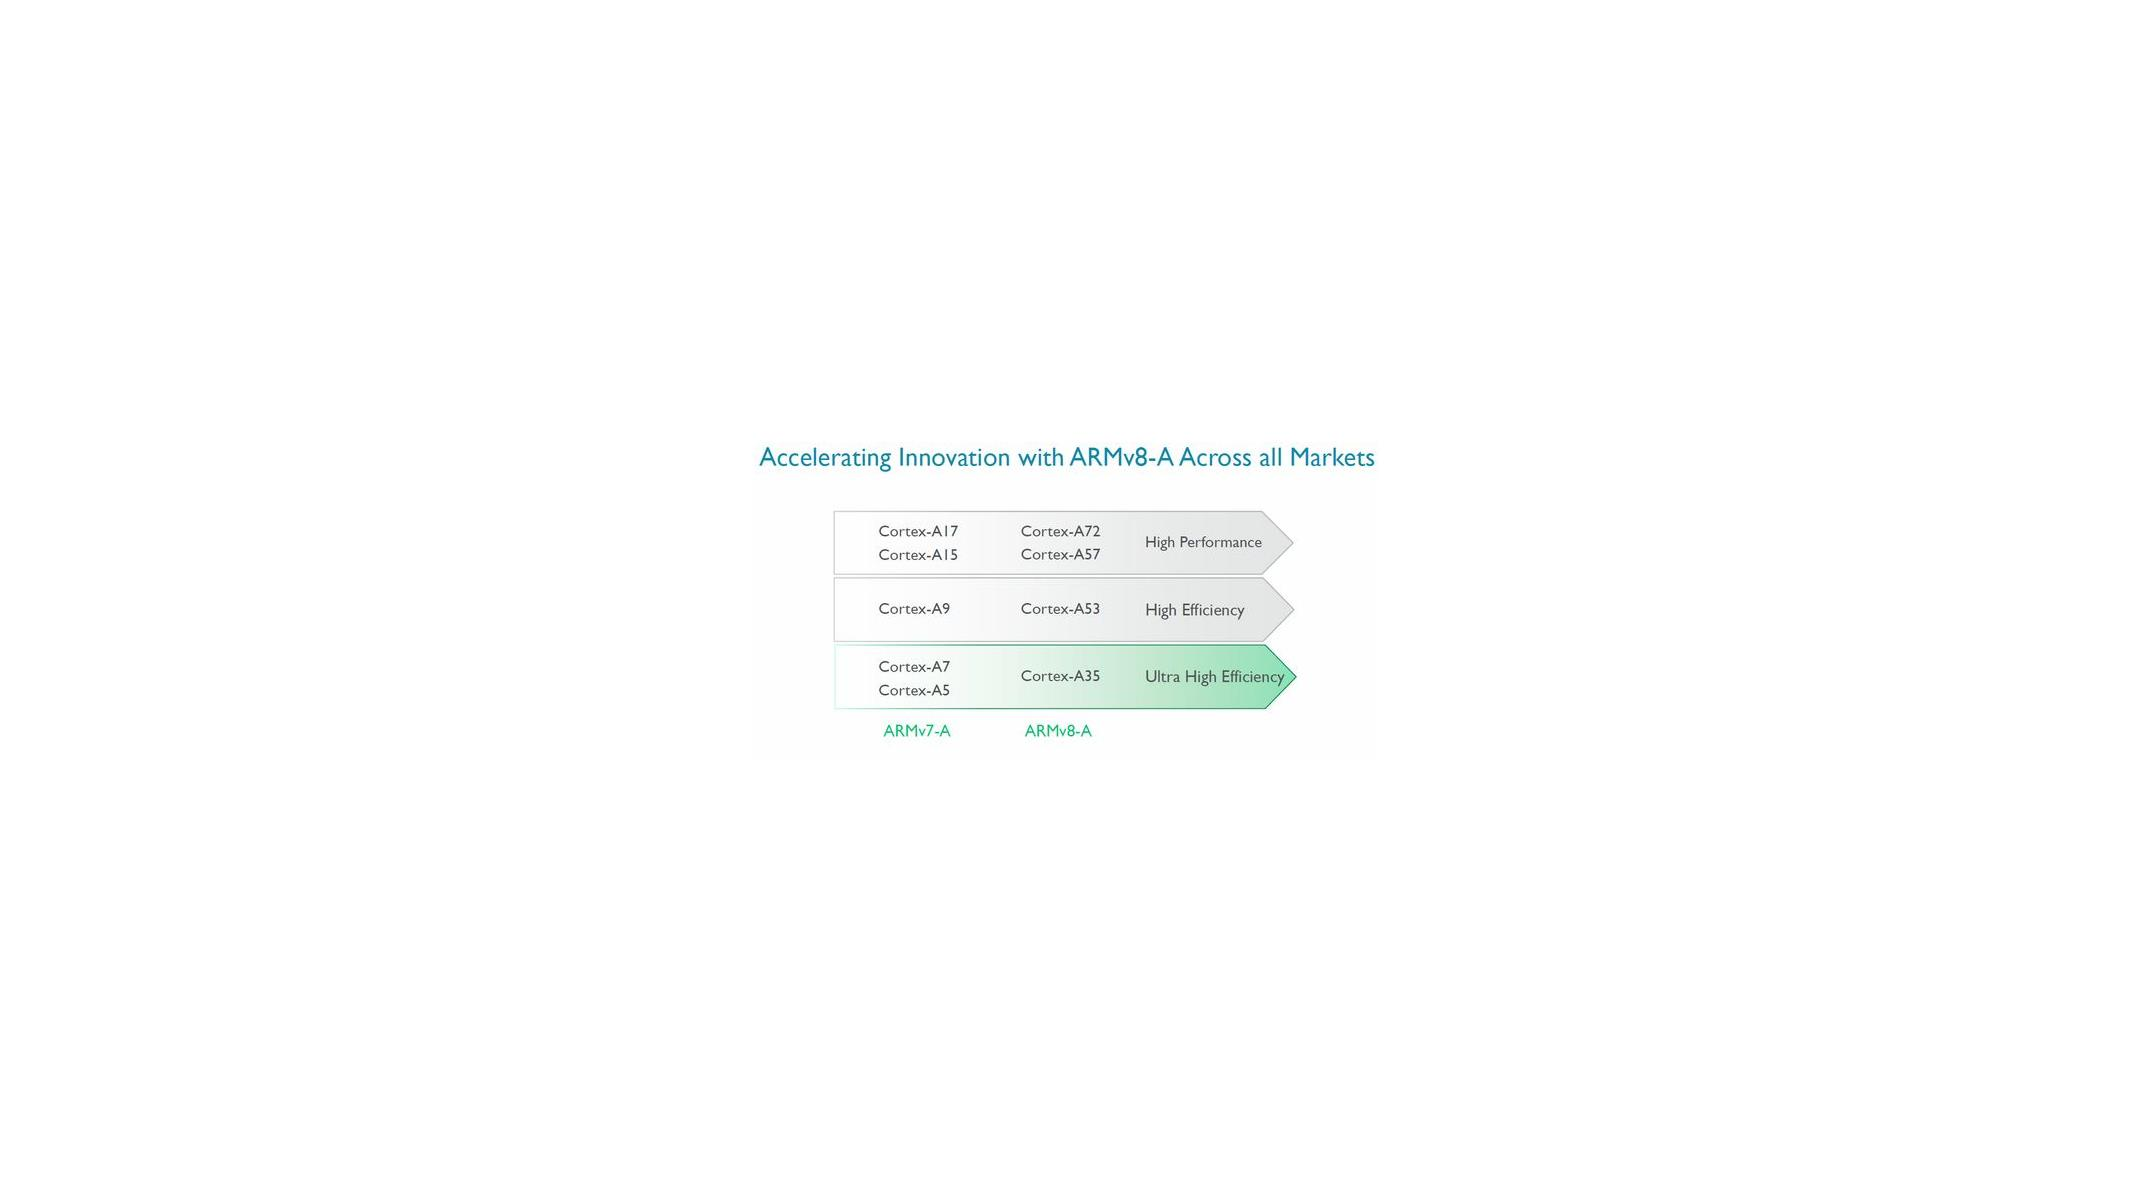 ARM Launches Low Power 64-bit Cortex-A35 For 'The Next